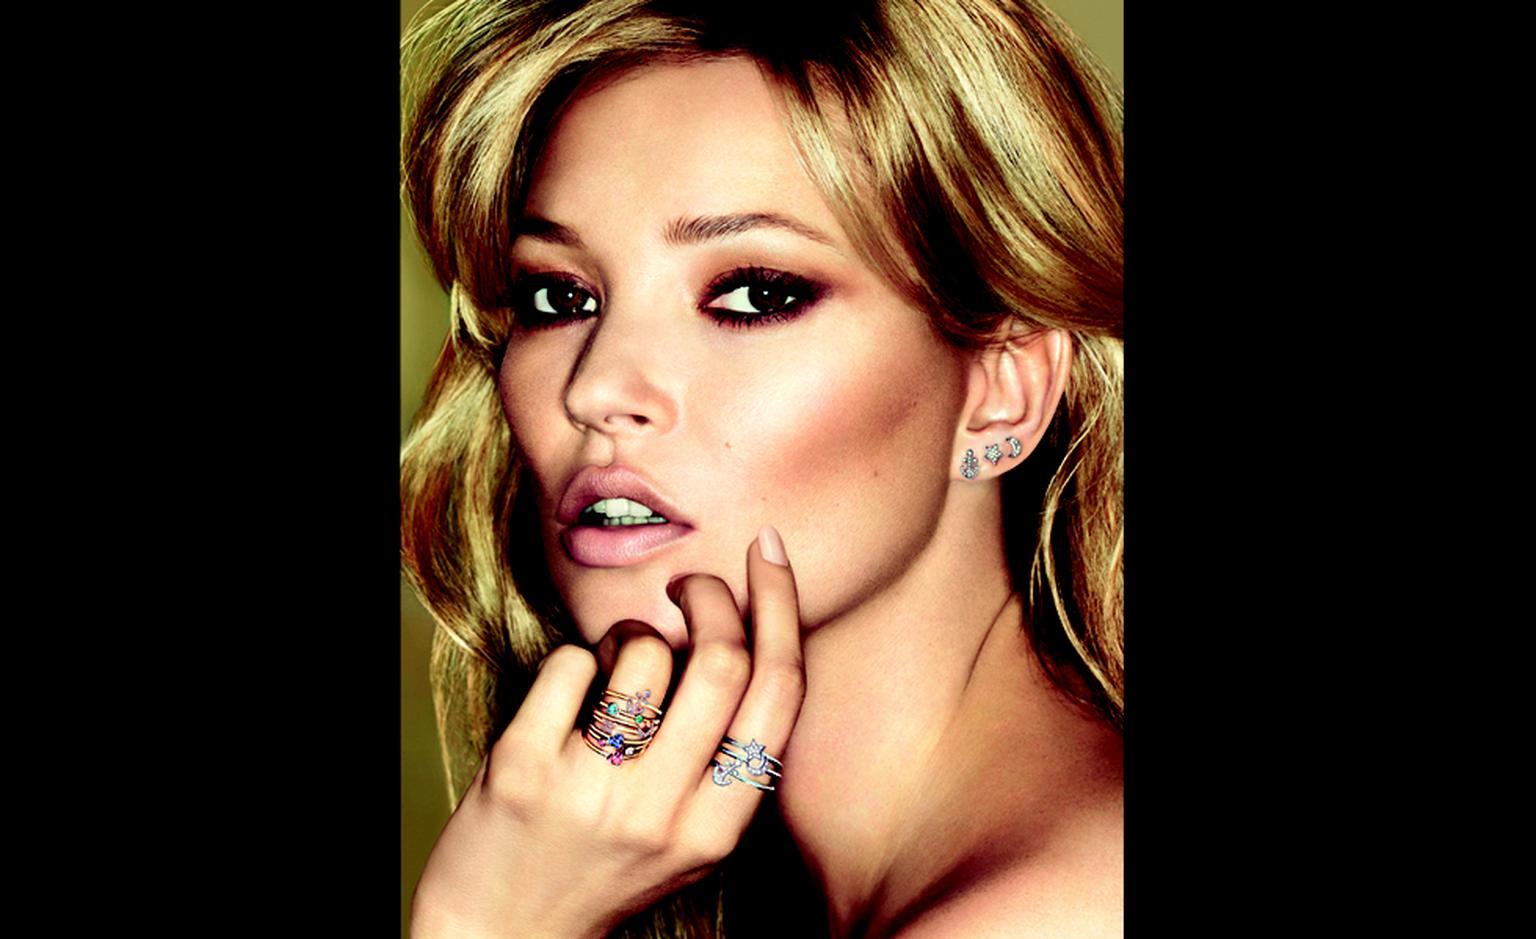 Kate Moss has designed a range of jewels for Fred inspired by her tattoos. set2